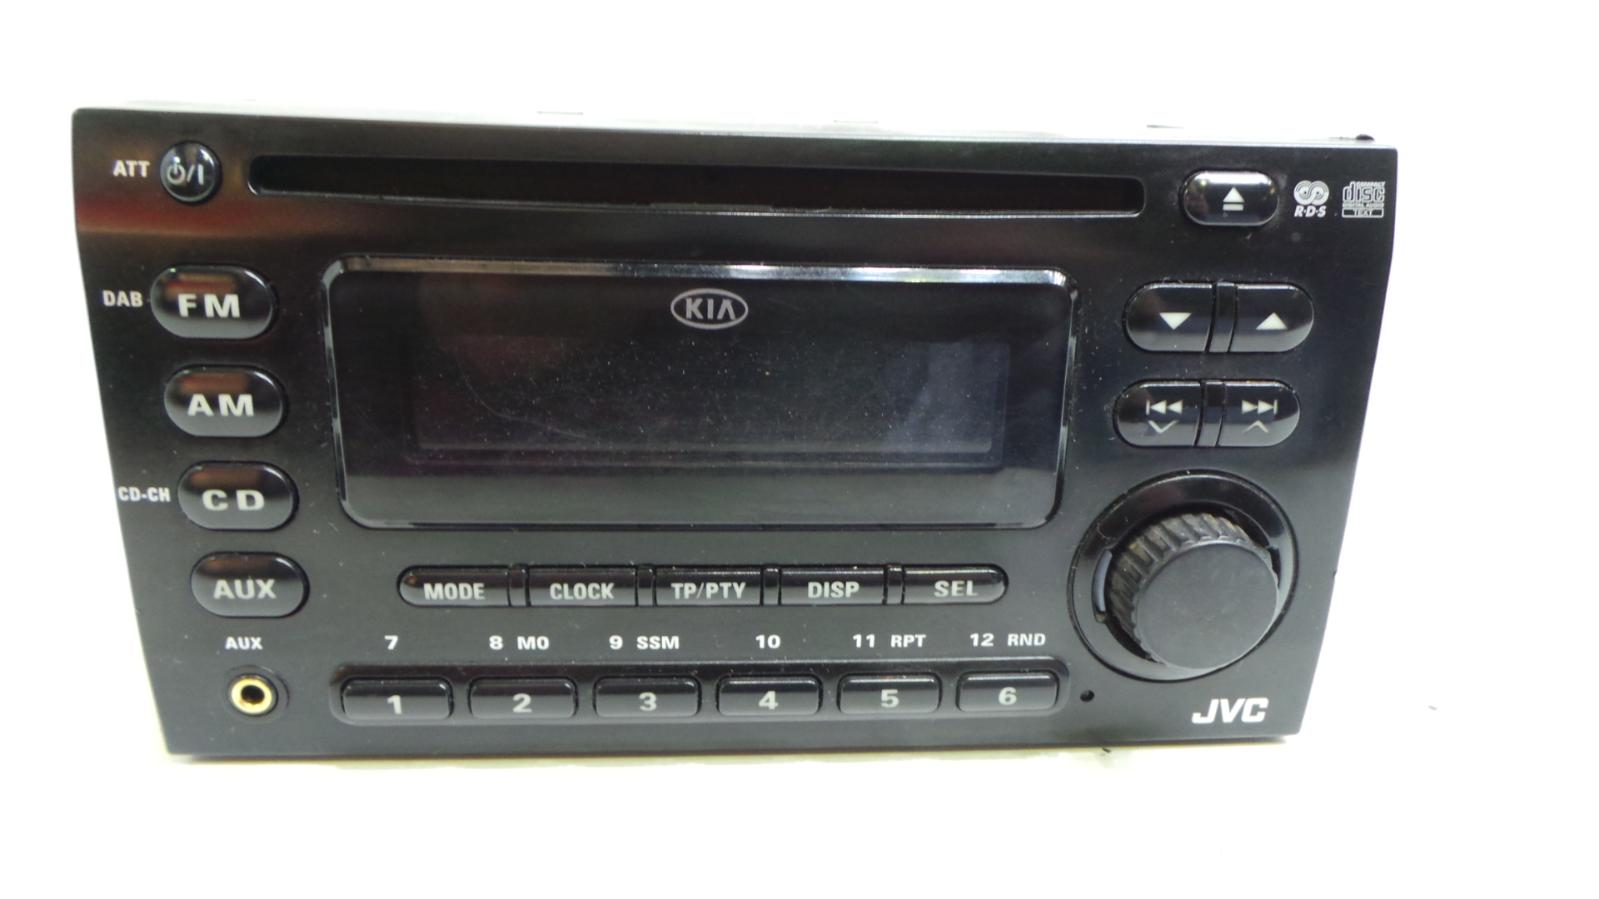 2007 kia sportage mk2 genuine cd player radio stereo kw ... wiring diagram for kia rio radio wiring diagram for kia cd player a02021a